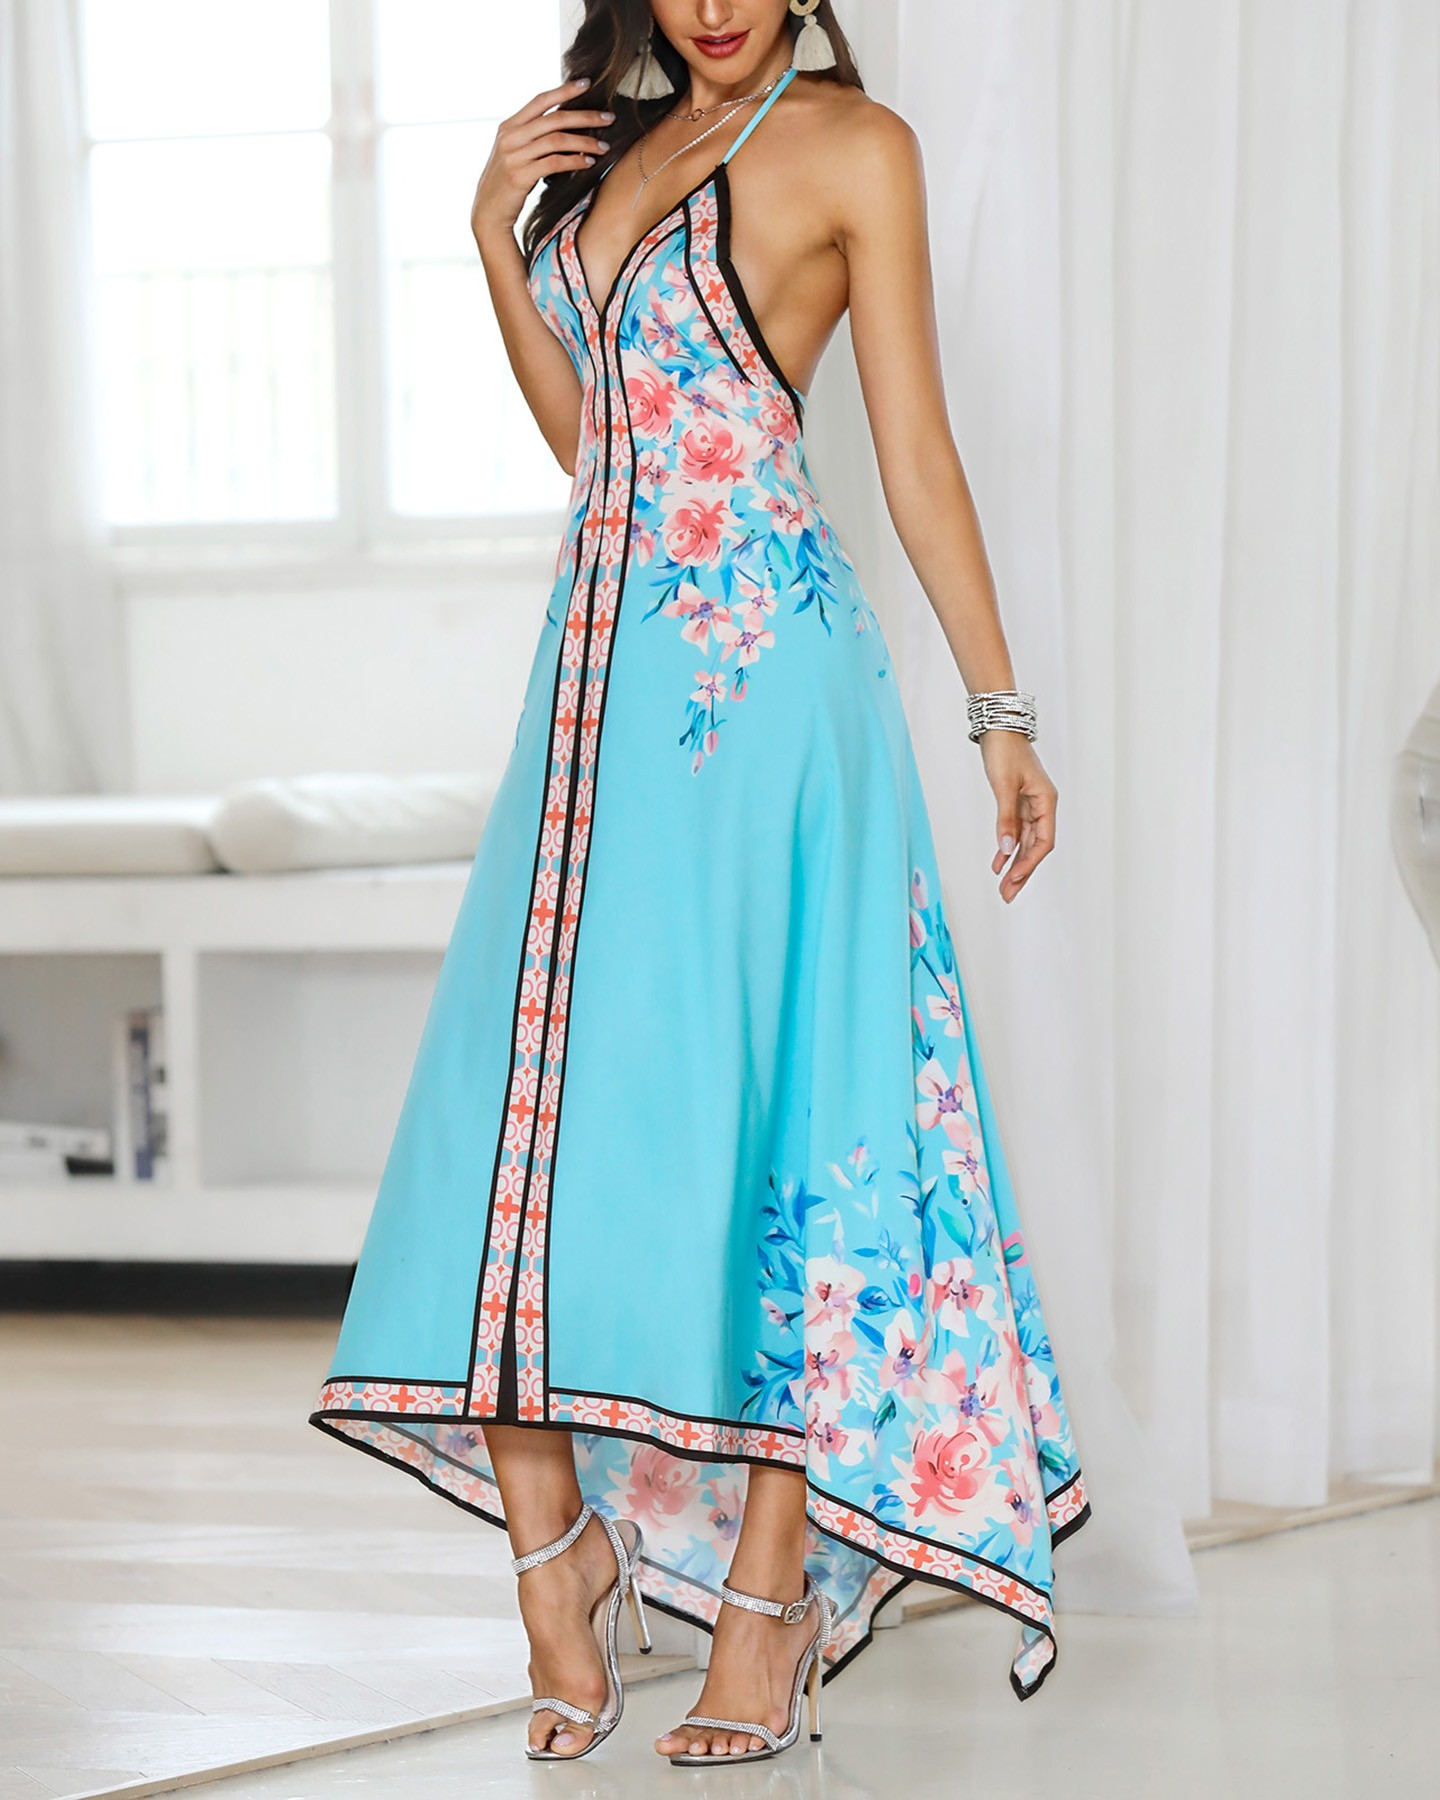 b94145f656a0 Floral Print Halter Backless Irregular Maxi Dress Online. Discover hottest  trend fashion at chicme.com